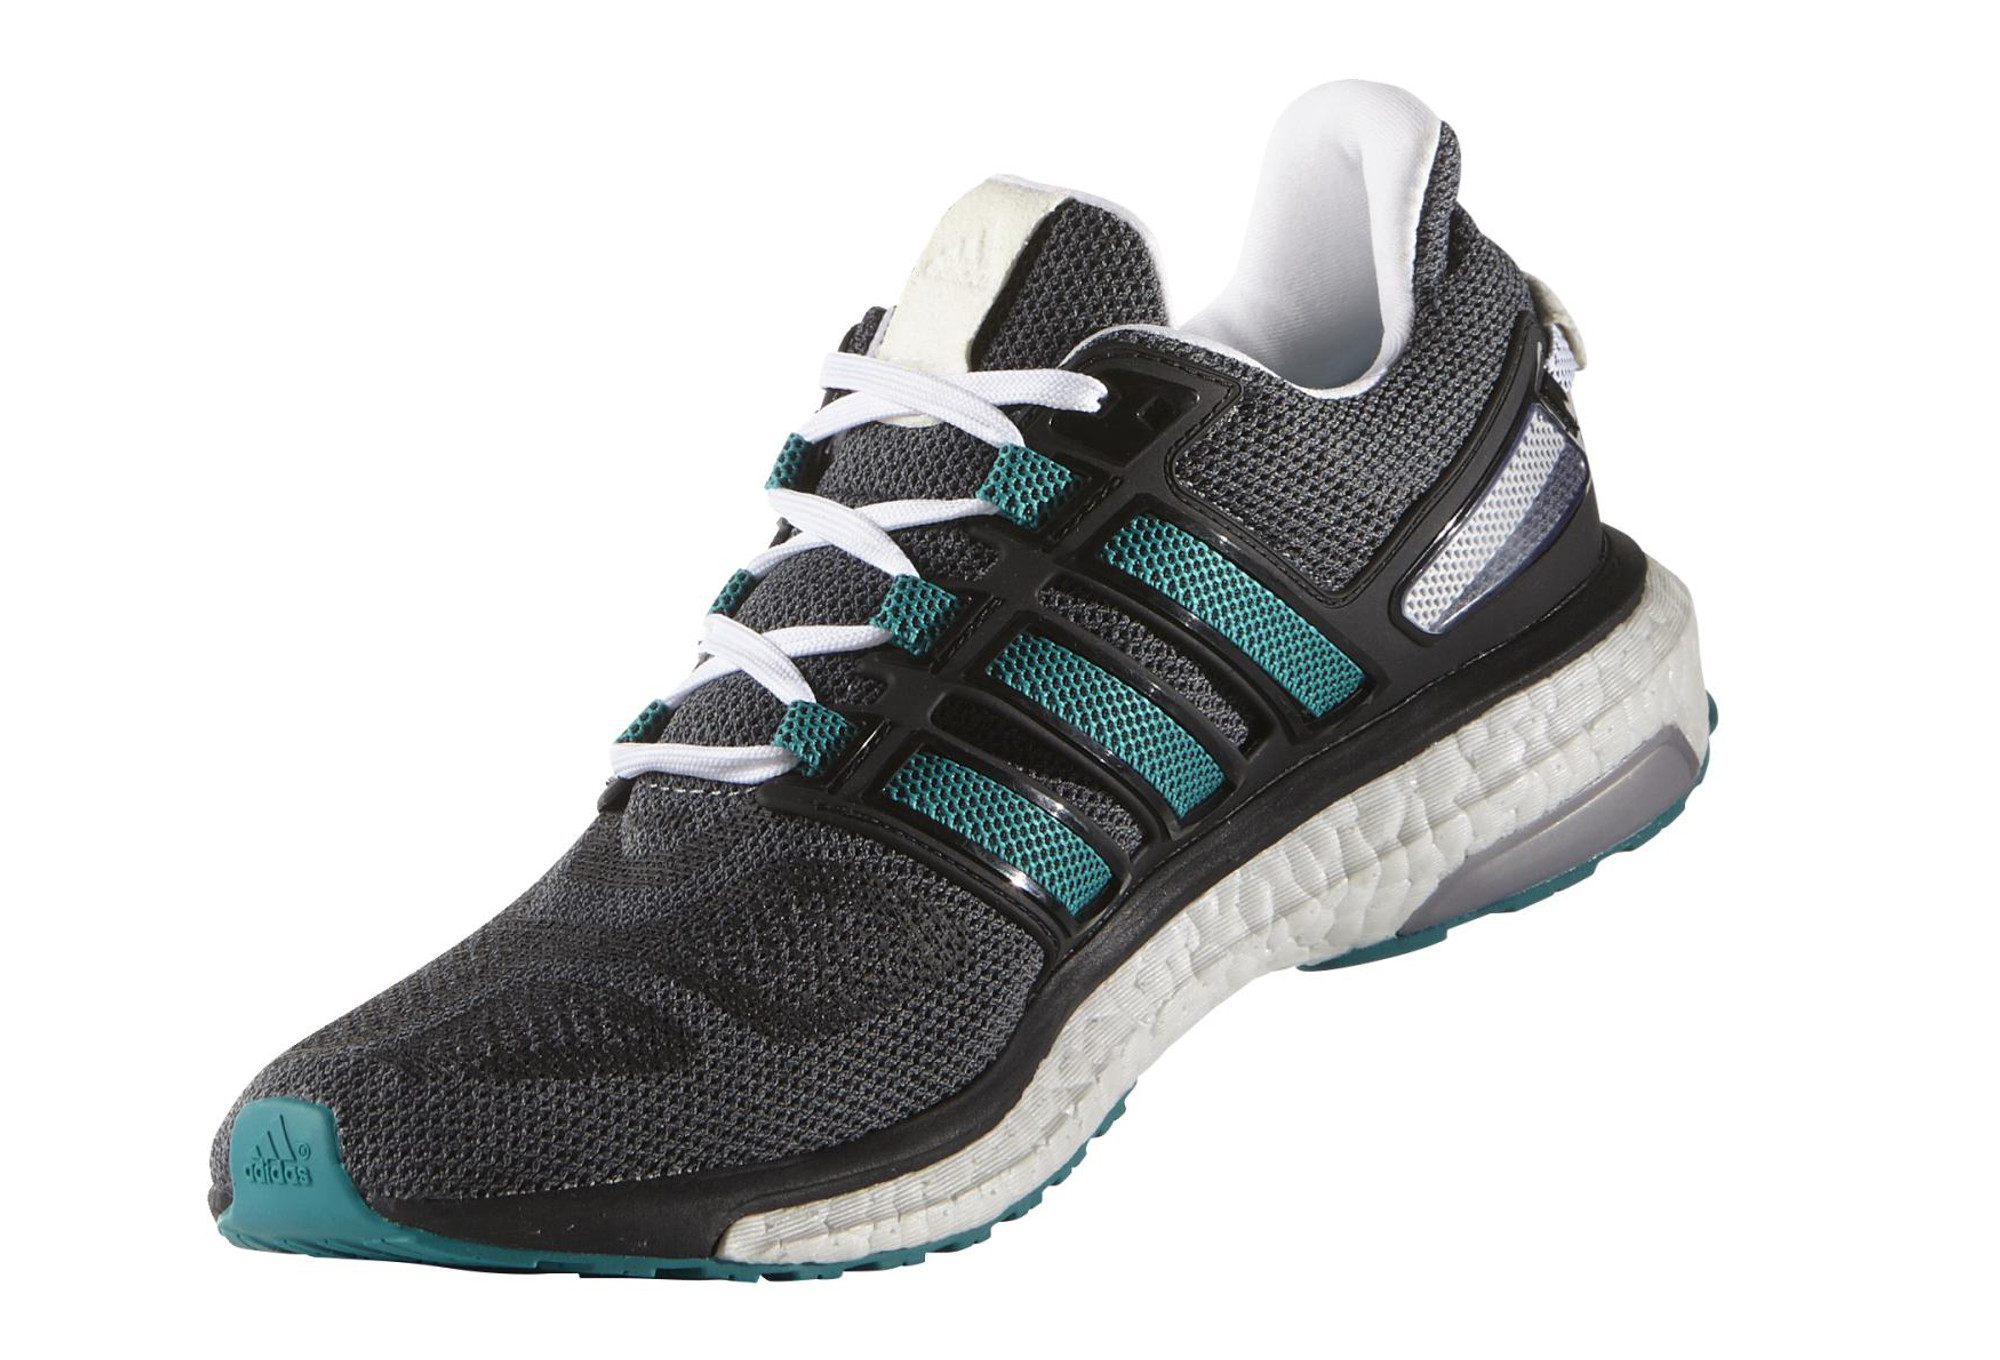 2adidas energy boost 3 hombre running